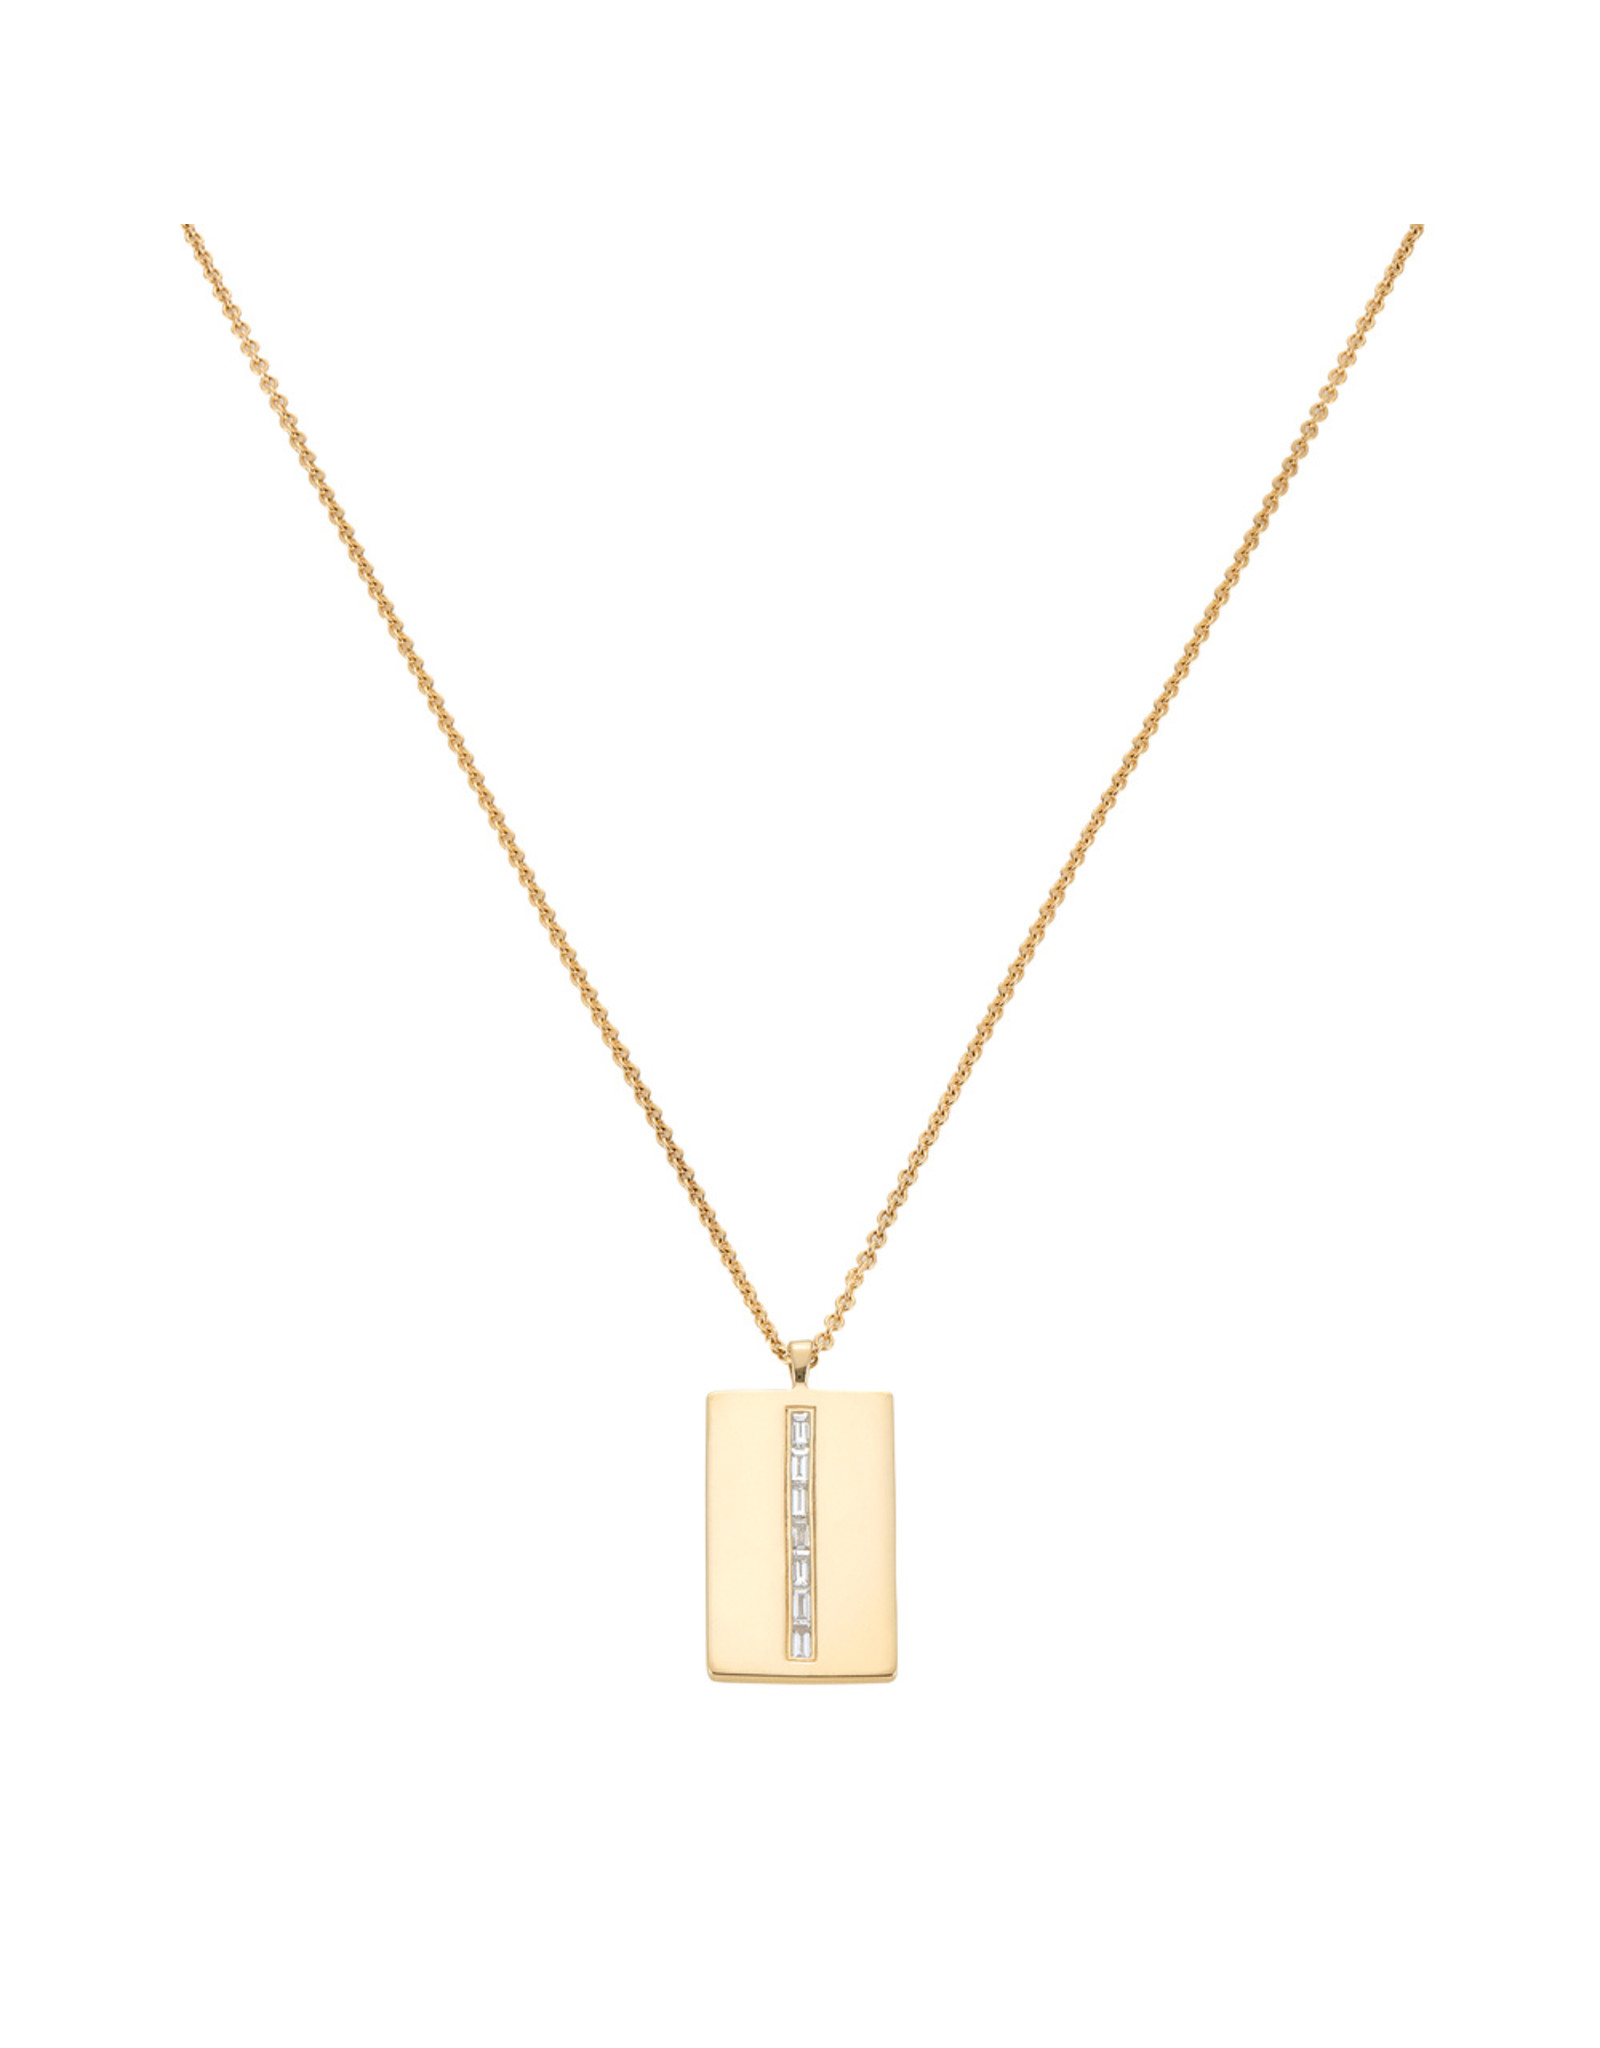 Eriness Eriness Diamond Baguette Dog Tag Necklace (Color: Yellow Gold / White Diamond)